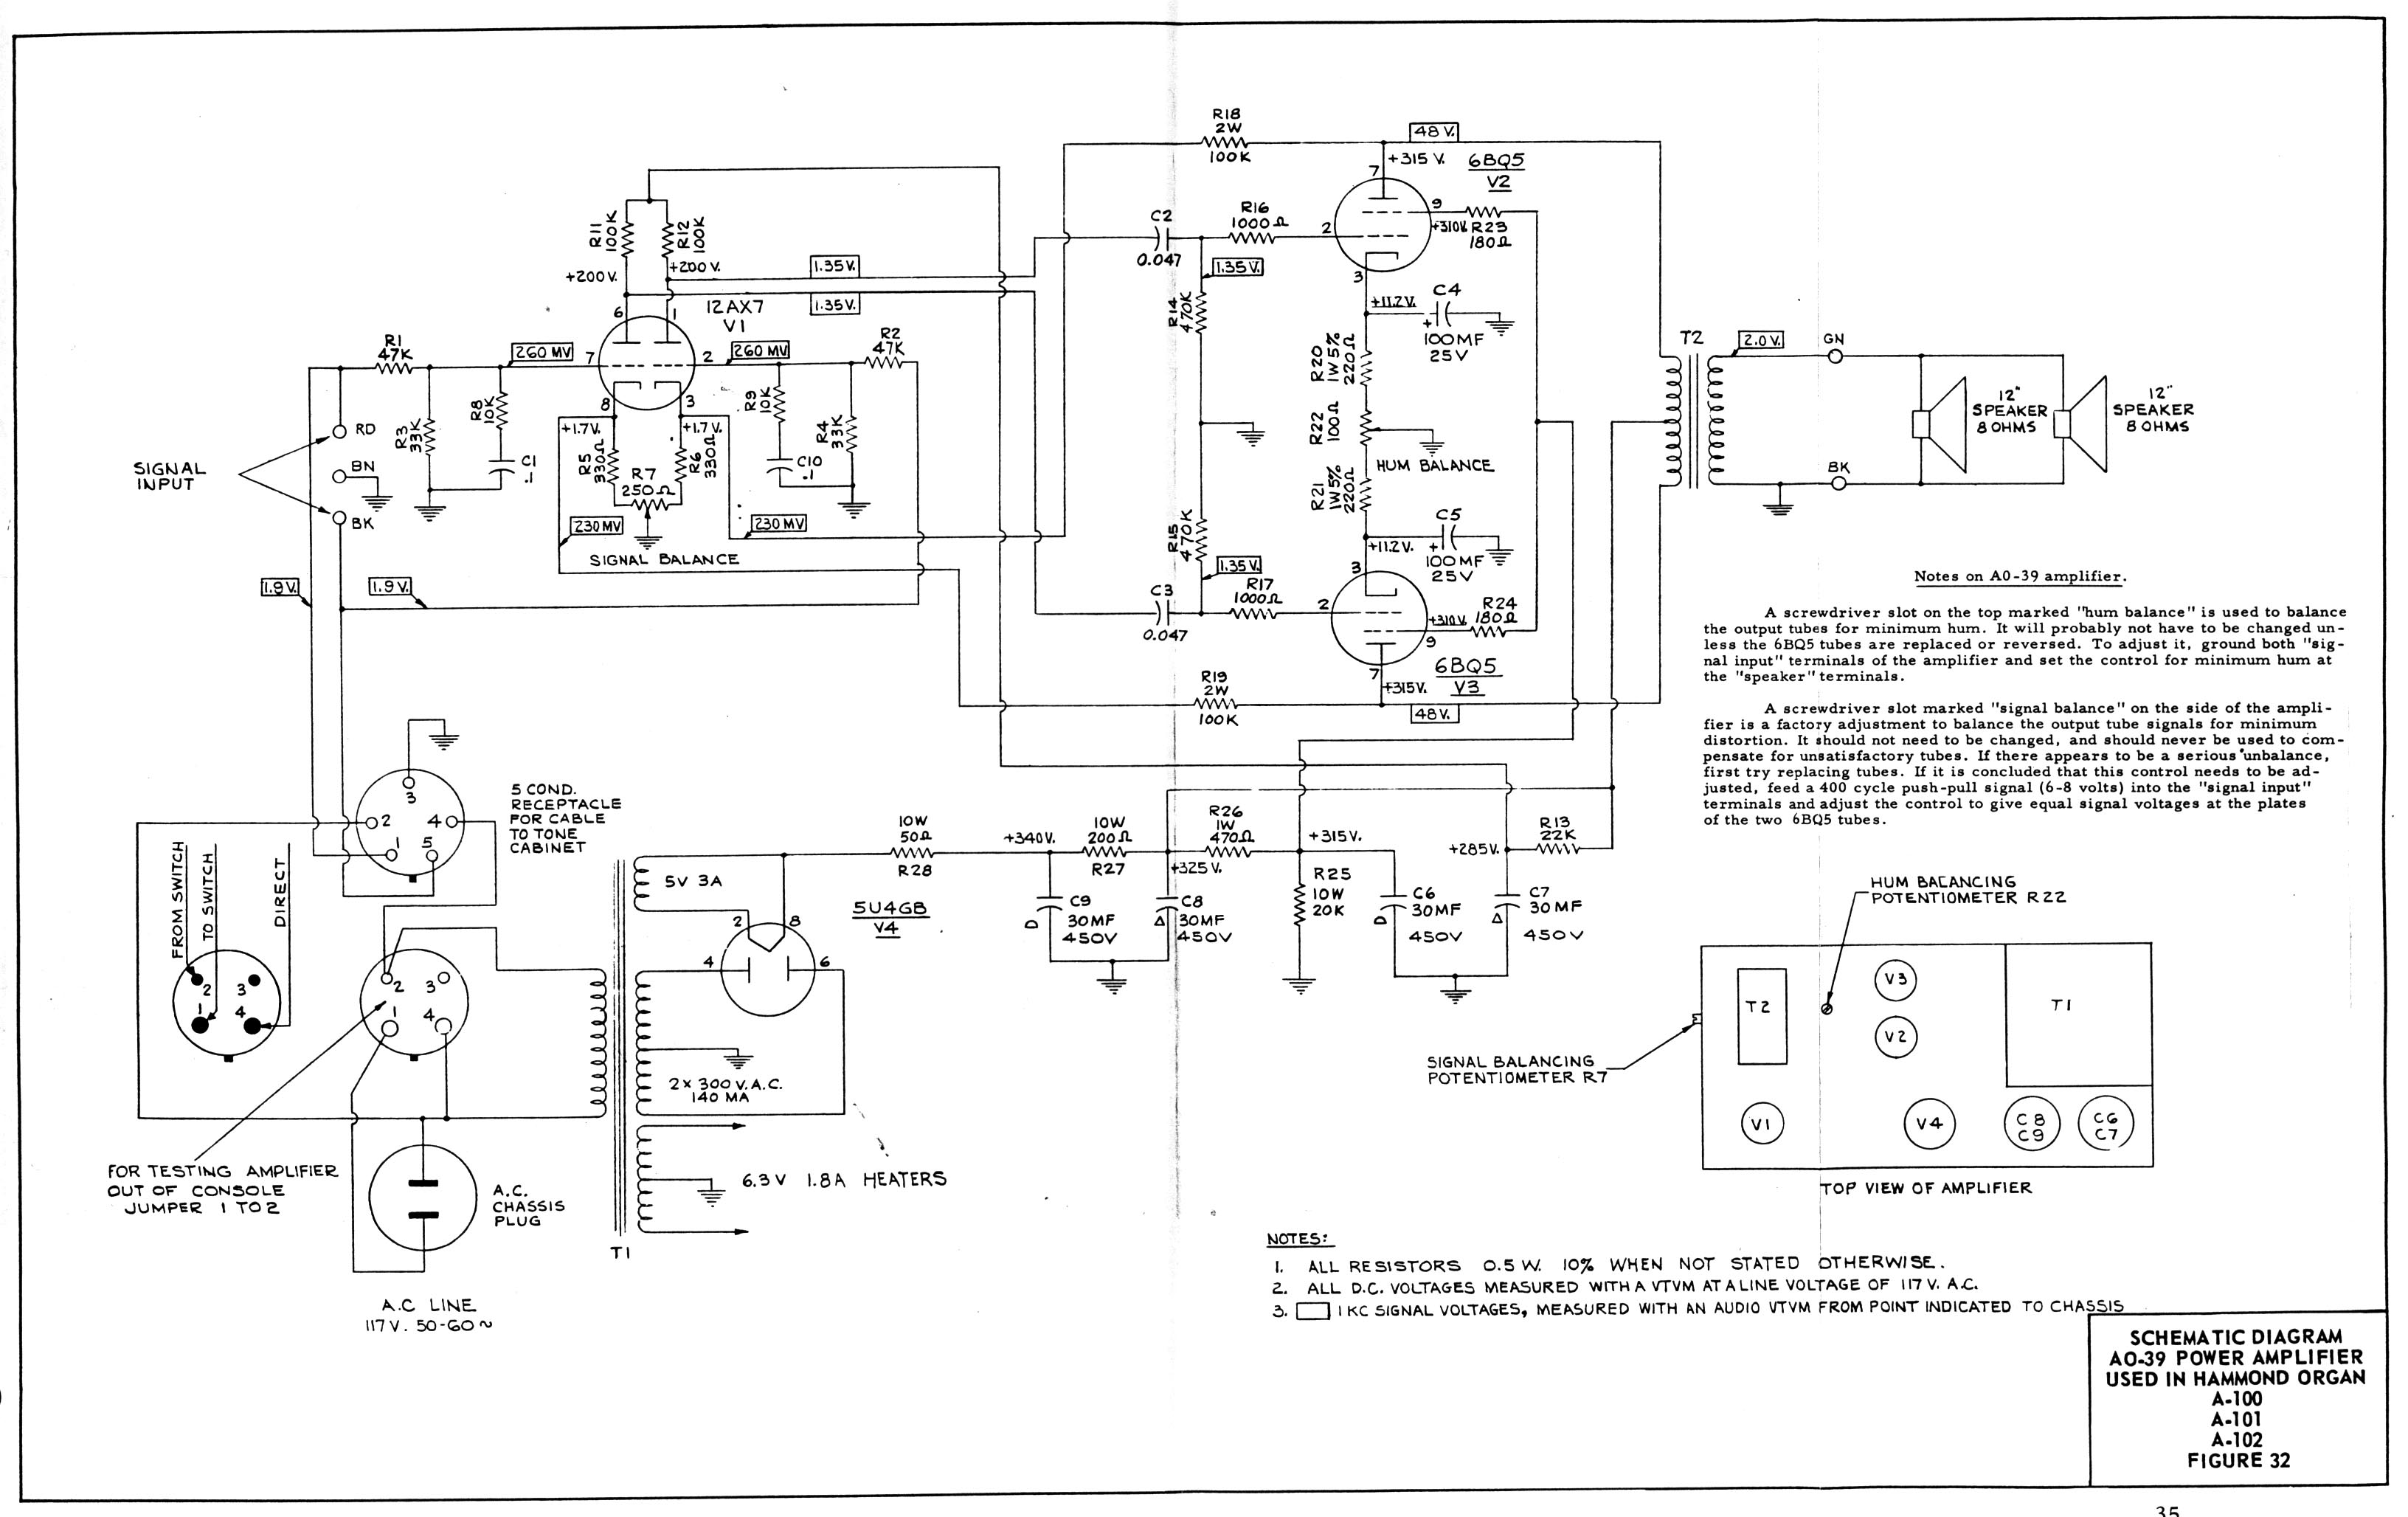 schem3 a 100 service manual hammond transformer wiring diagram at et-consult.org